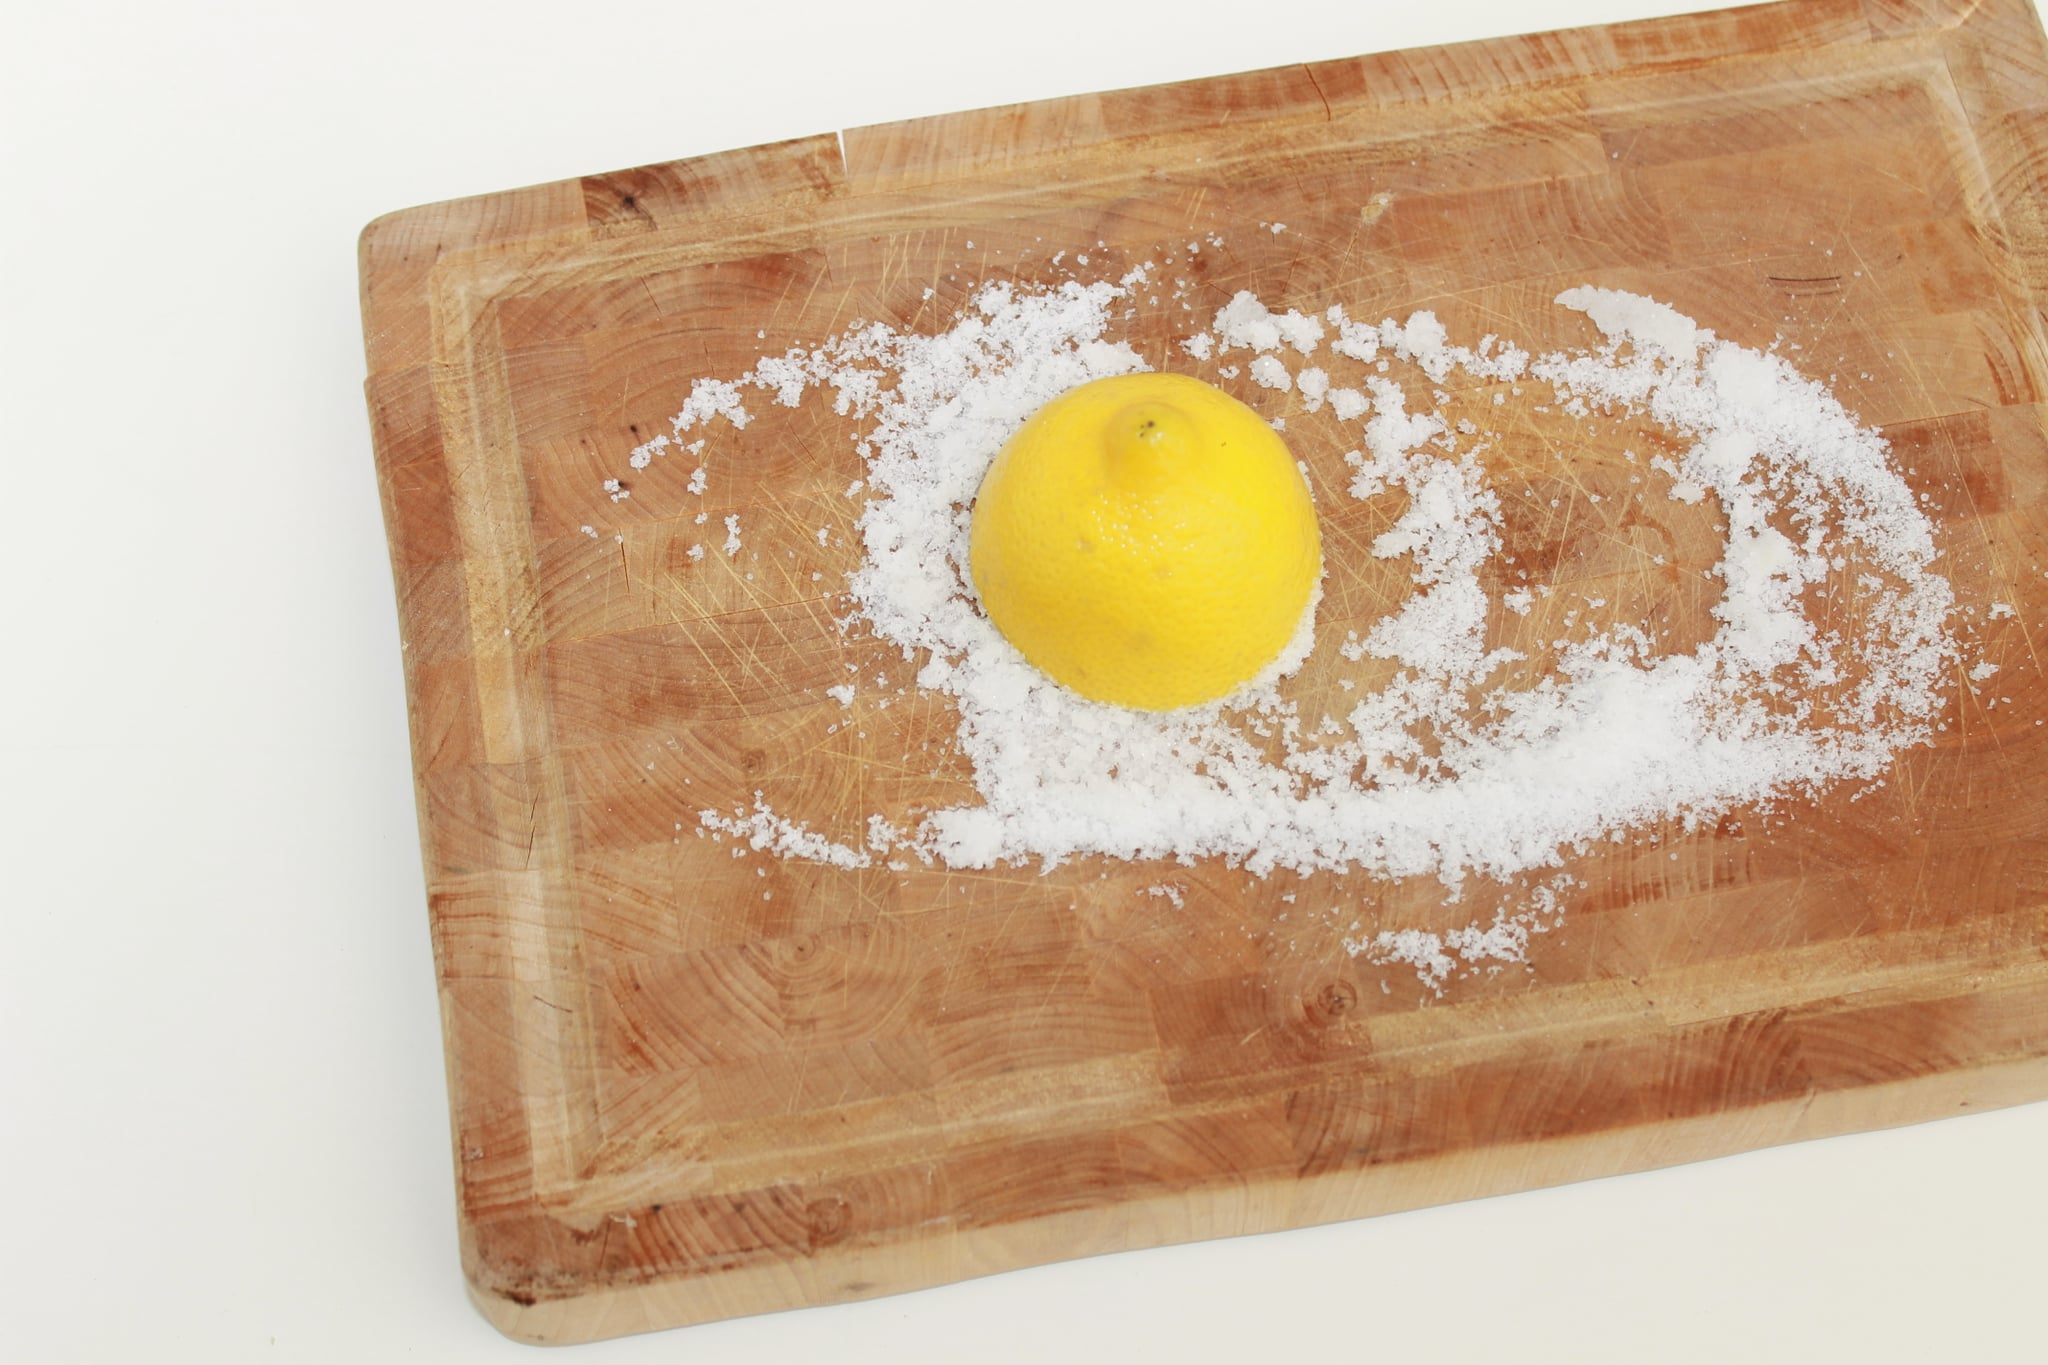 how to clean a wooden cutting board with lemon